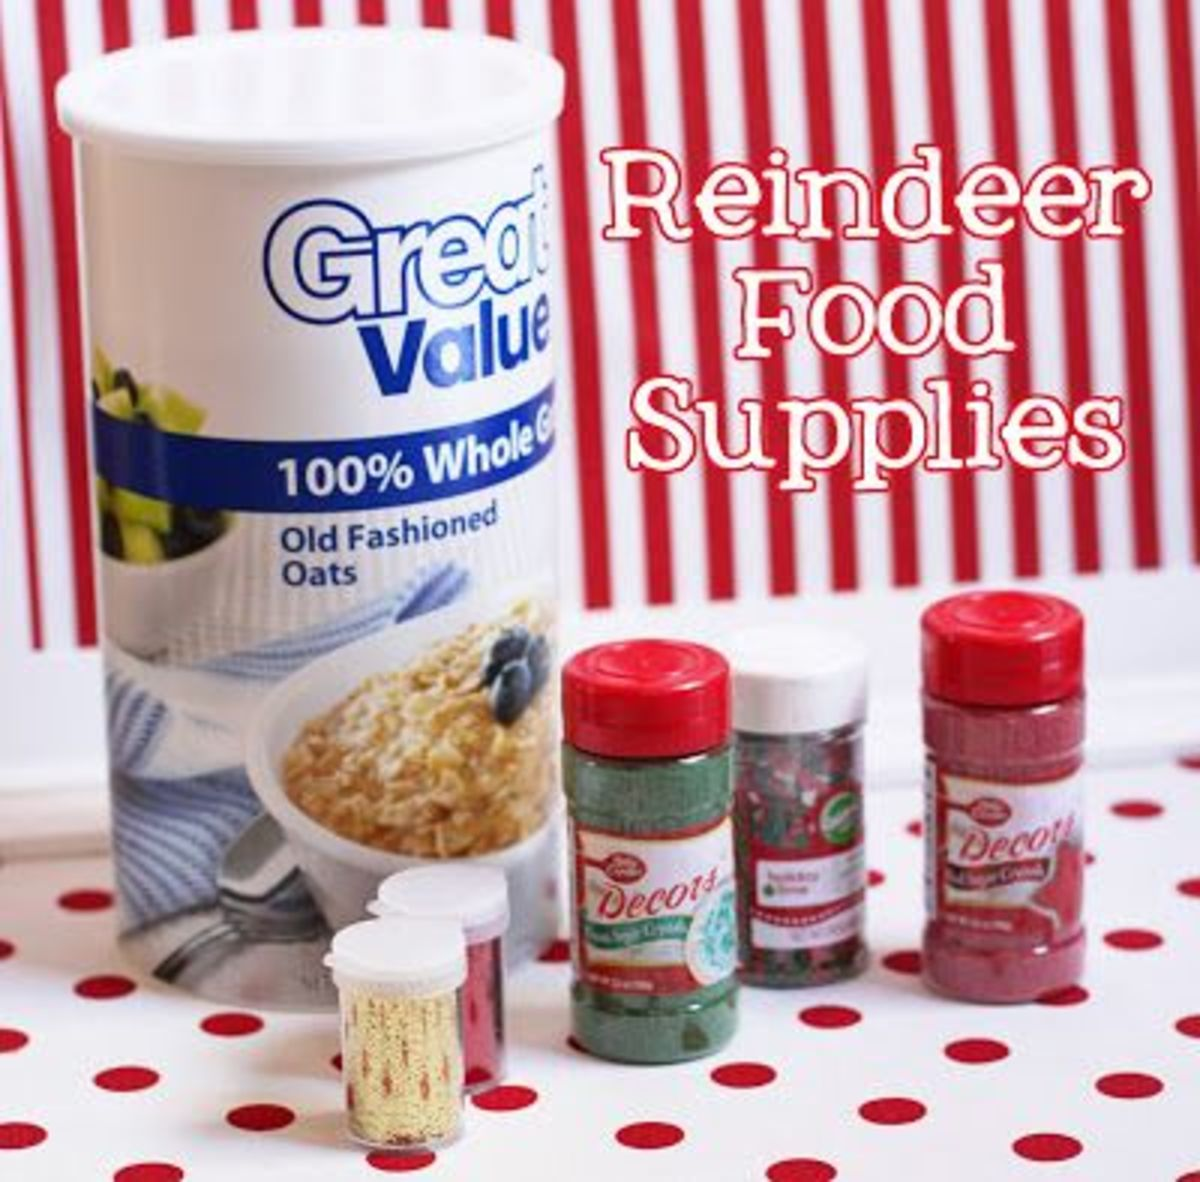 Check out Amanda's Parties To-Go for several holiday tips, tricks and ideas.